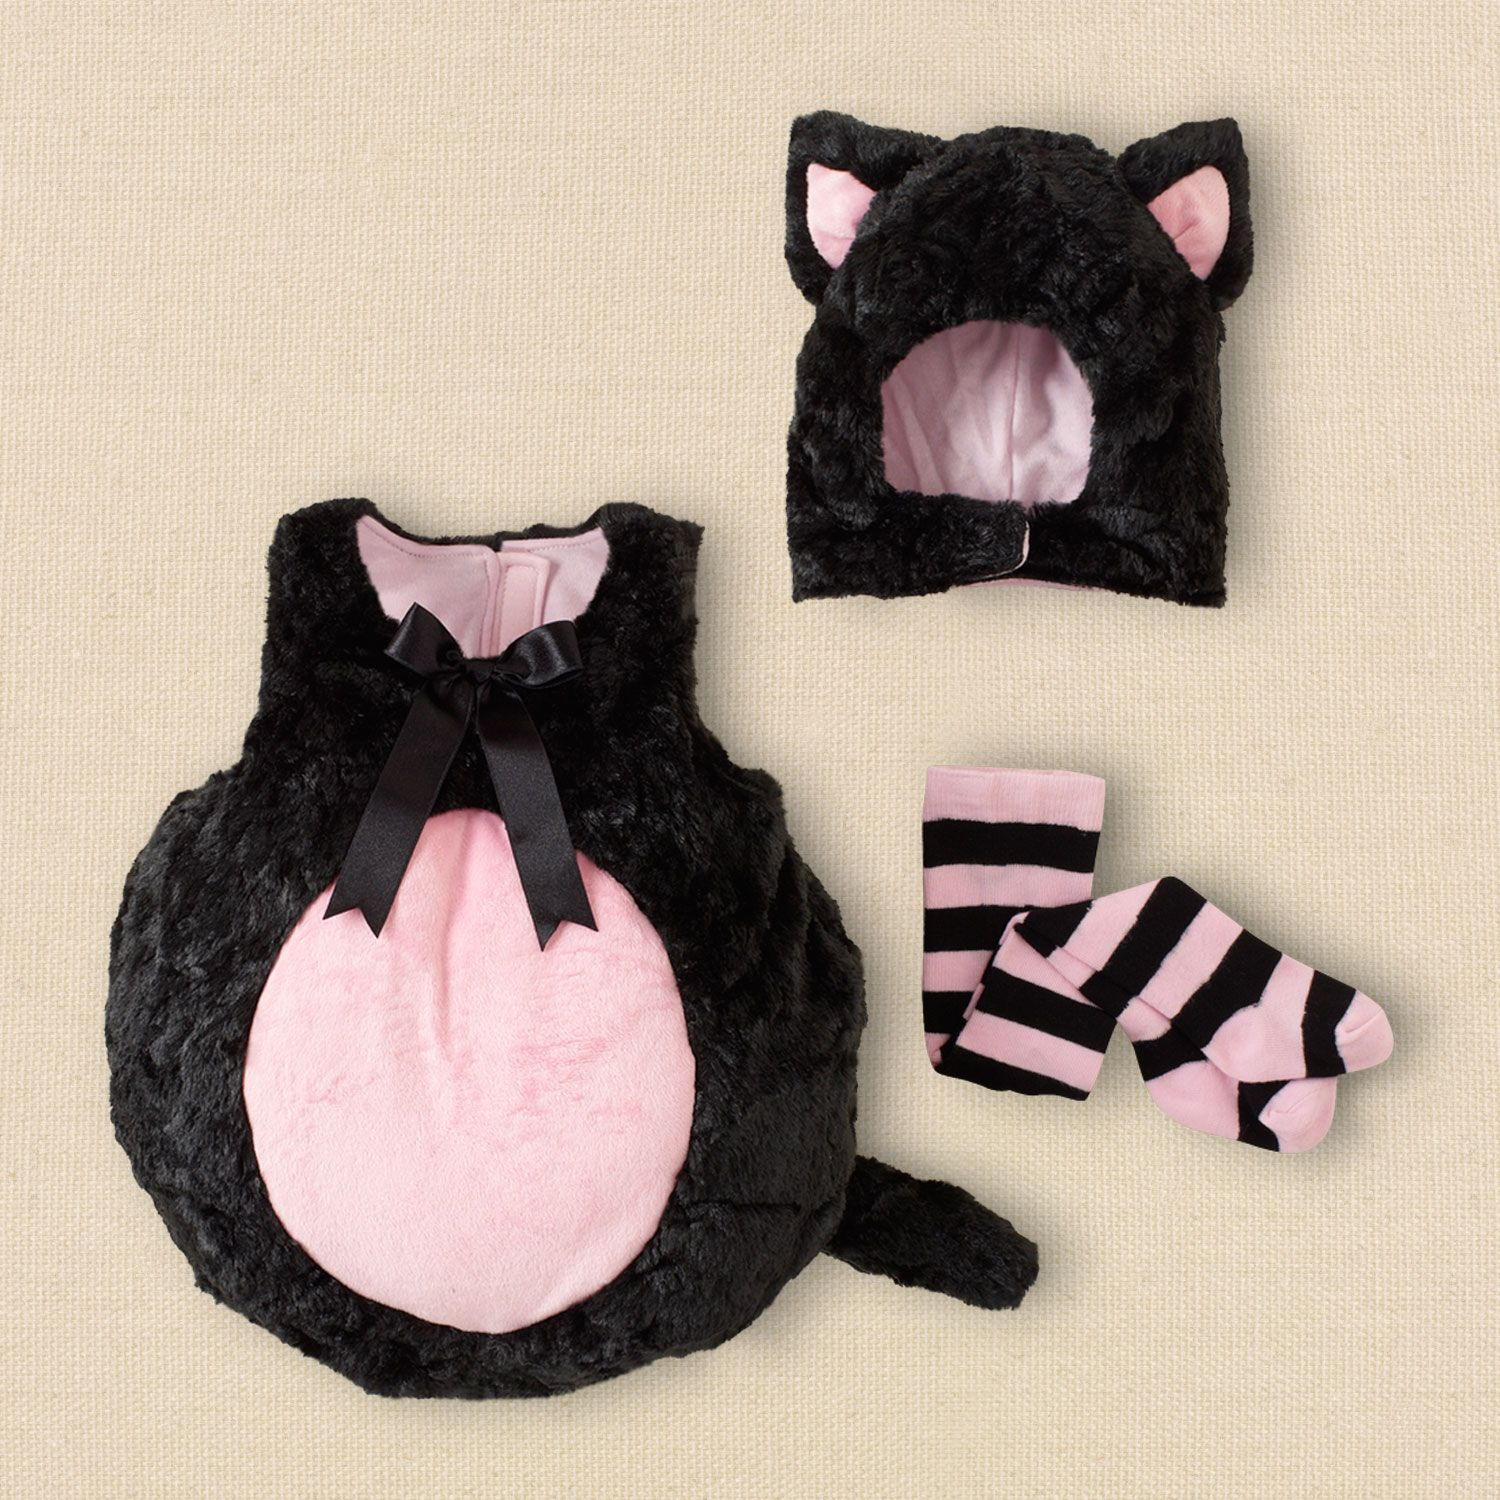 Newborn Kitty Costume Children S Clothing Kids Clothes The Children S Place Carnevale